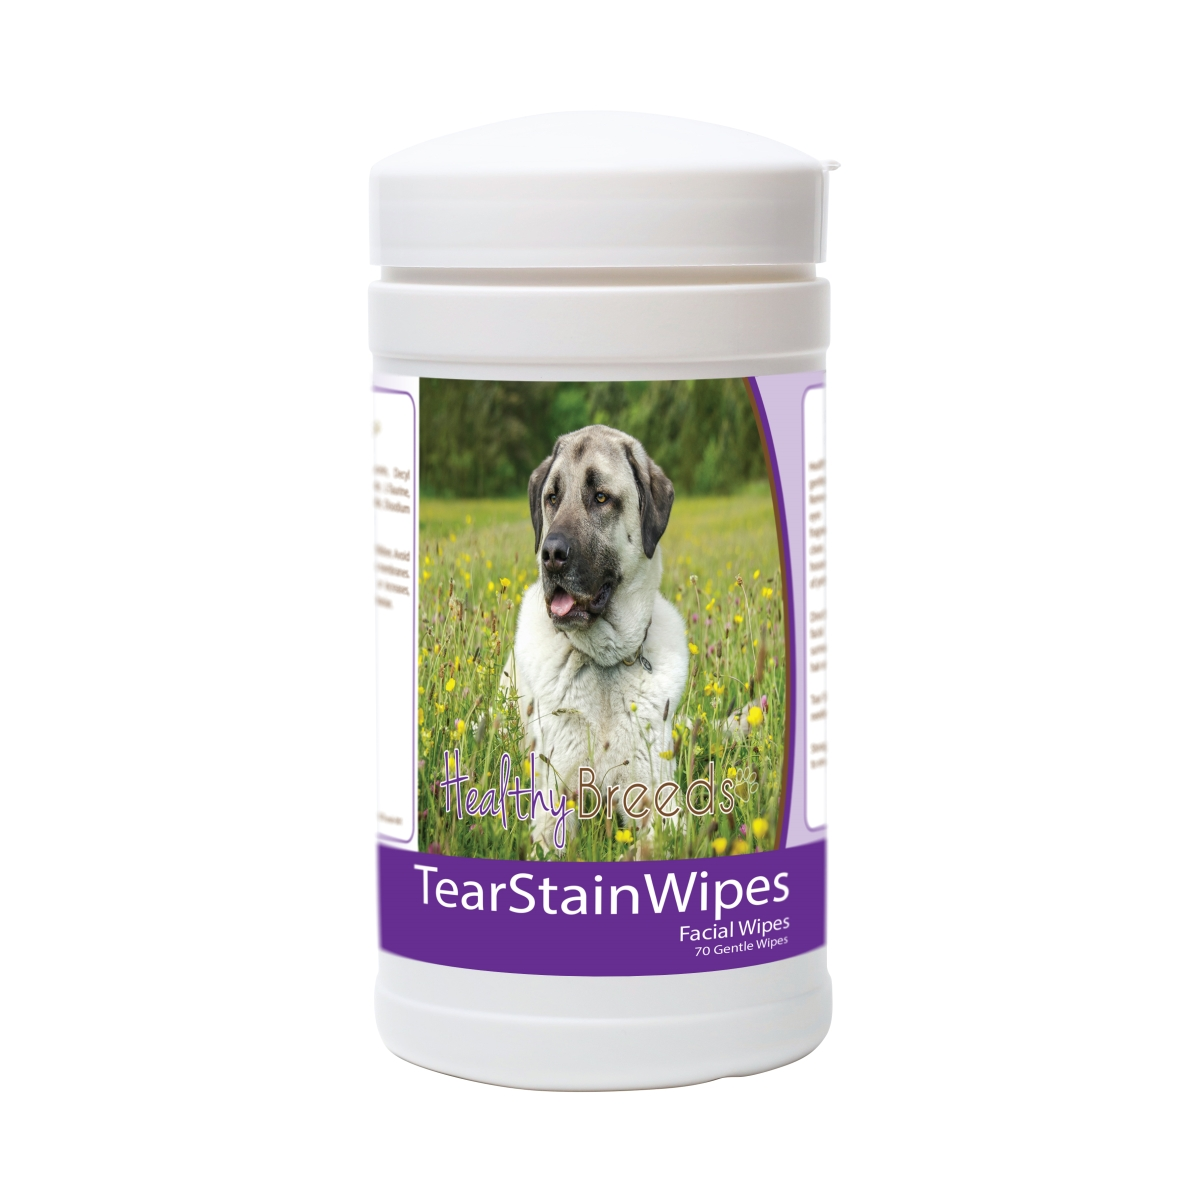 Healthy Breeds 840235178538 Anatolian Shepherd Dog Tear Stain Wipes - 70 Count